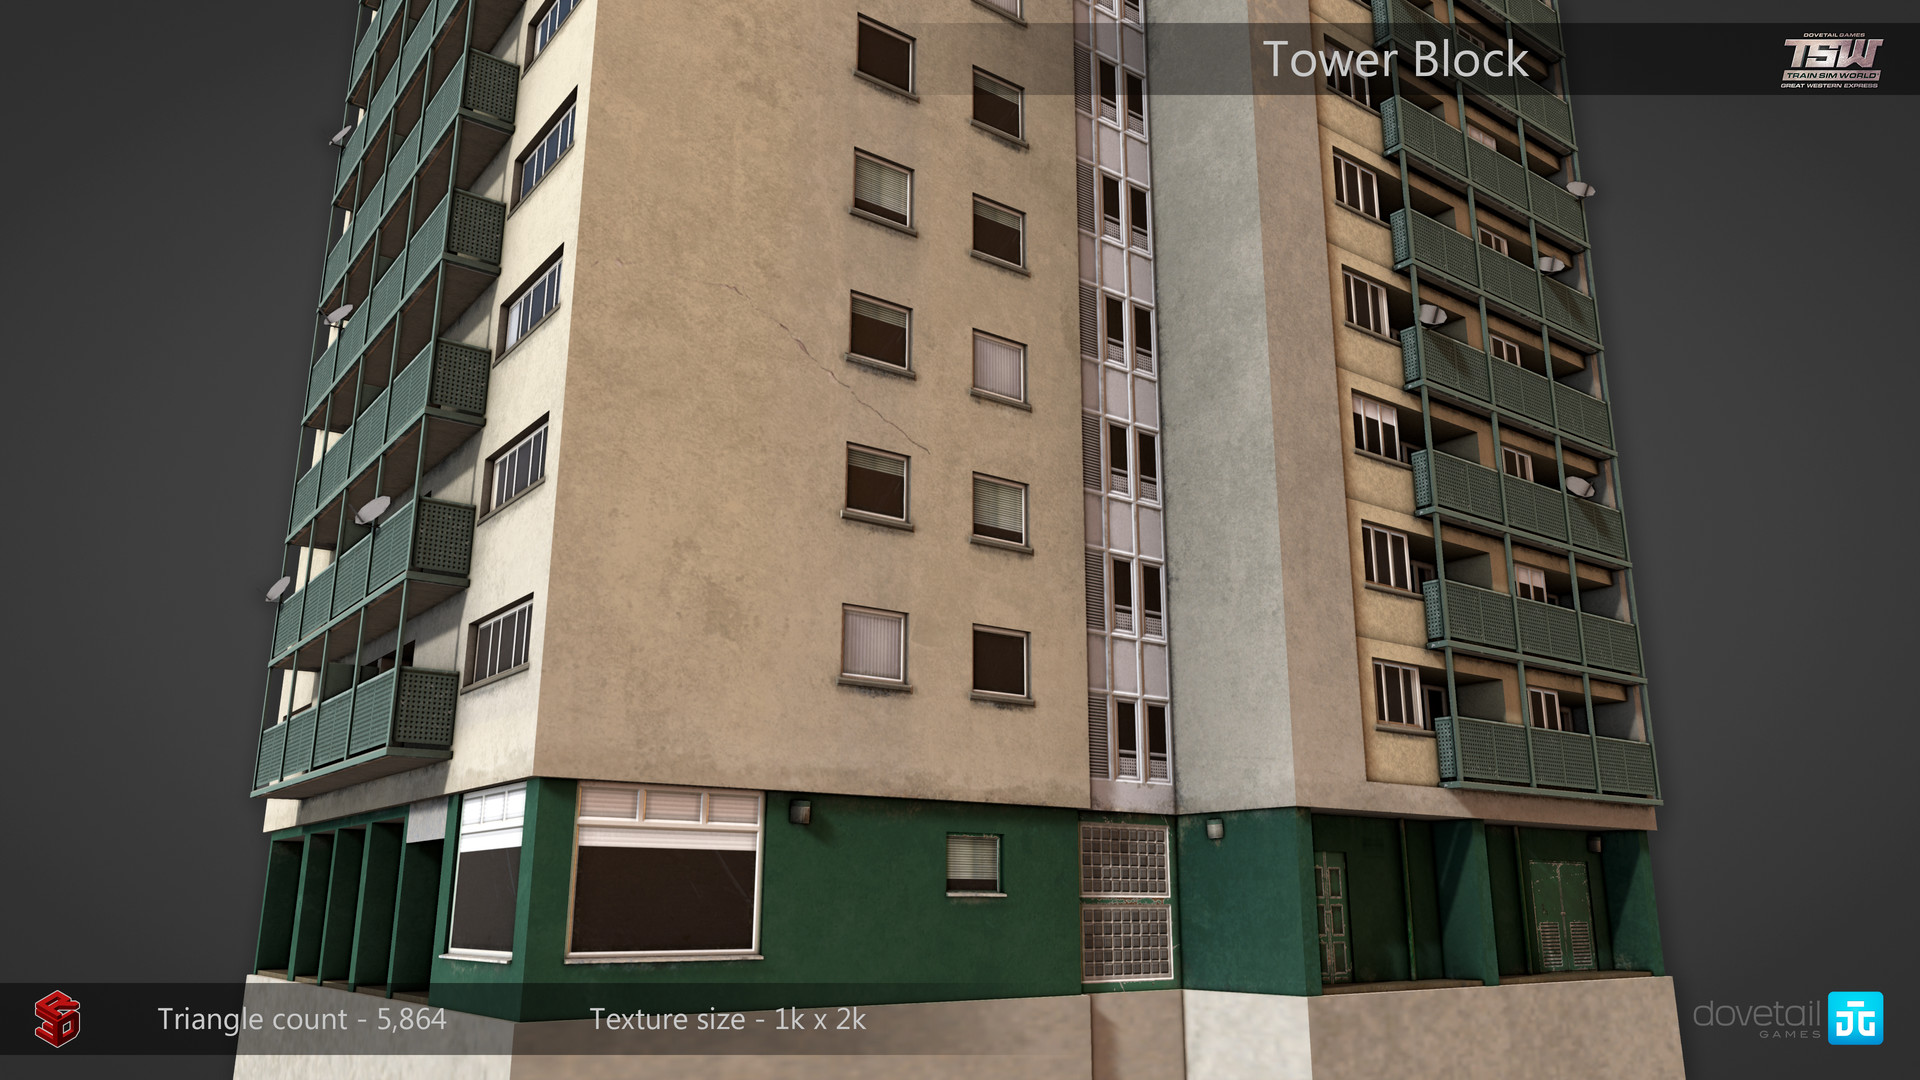 Ross mccafferty towerblock 03